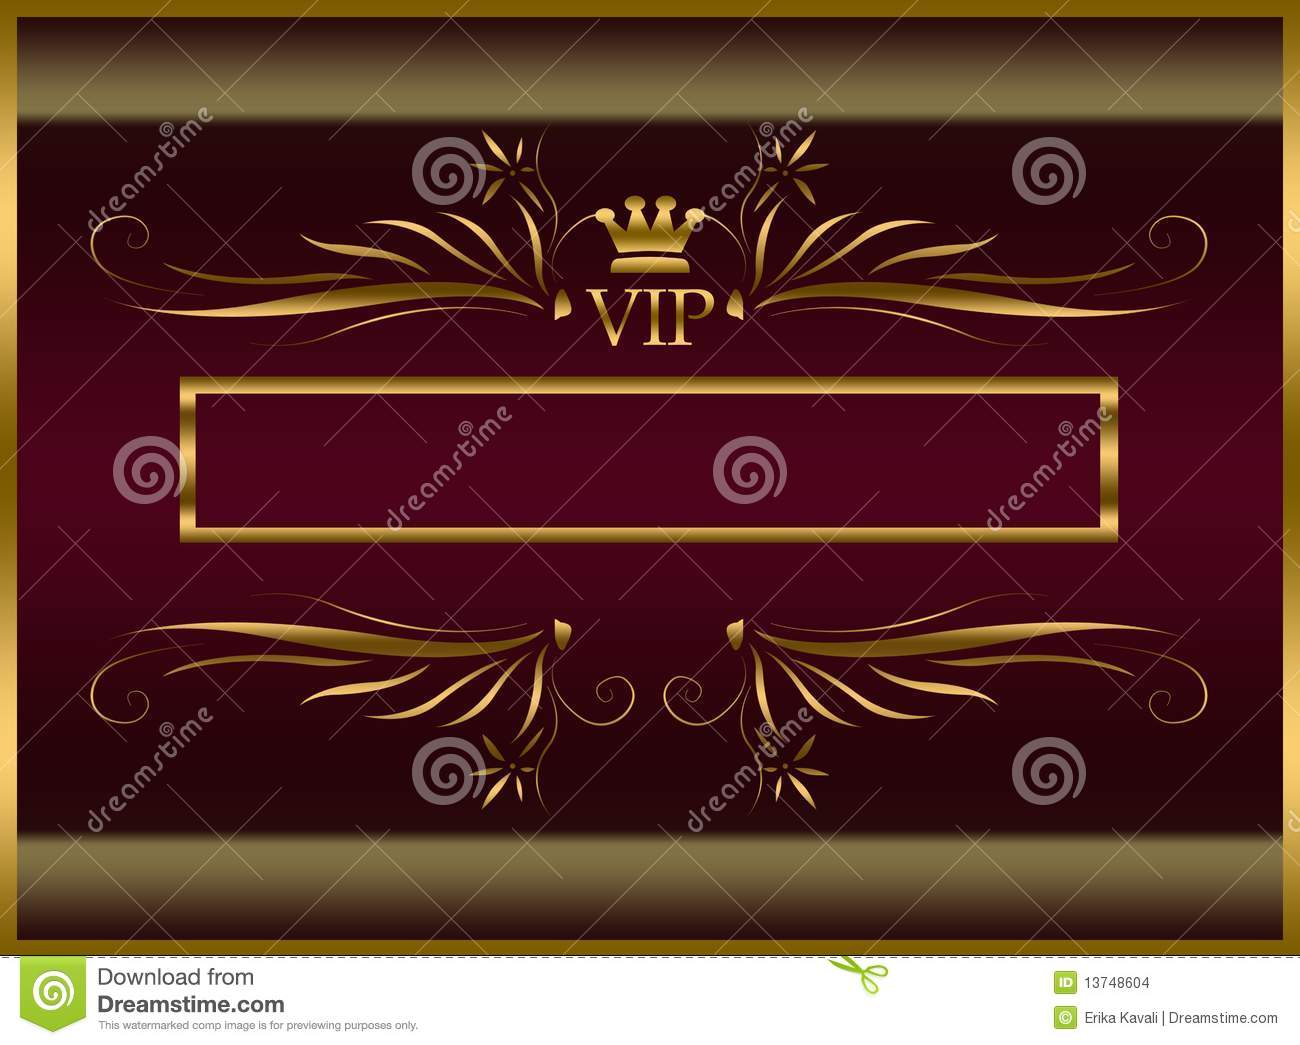 Elegant Vip Template Photos Images and Pictures 1443 Images – Vip Ticket Template